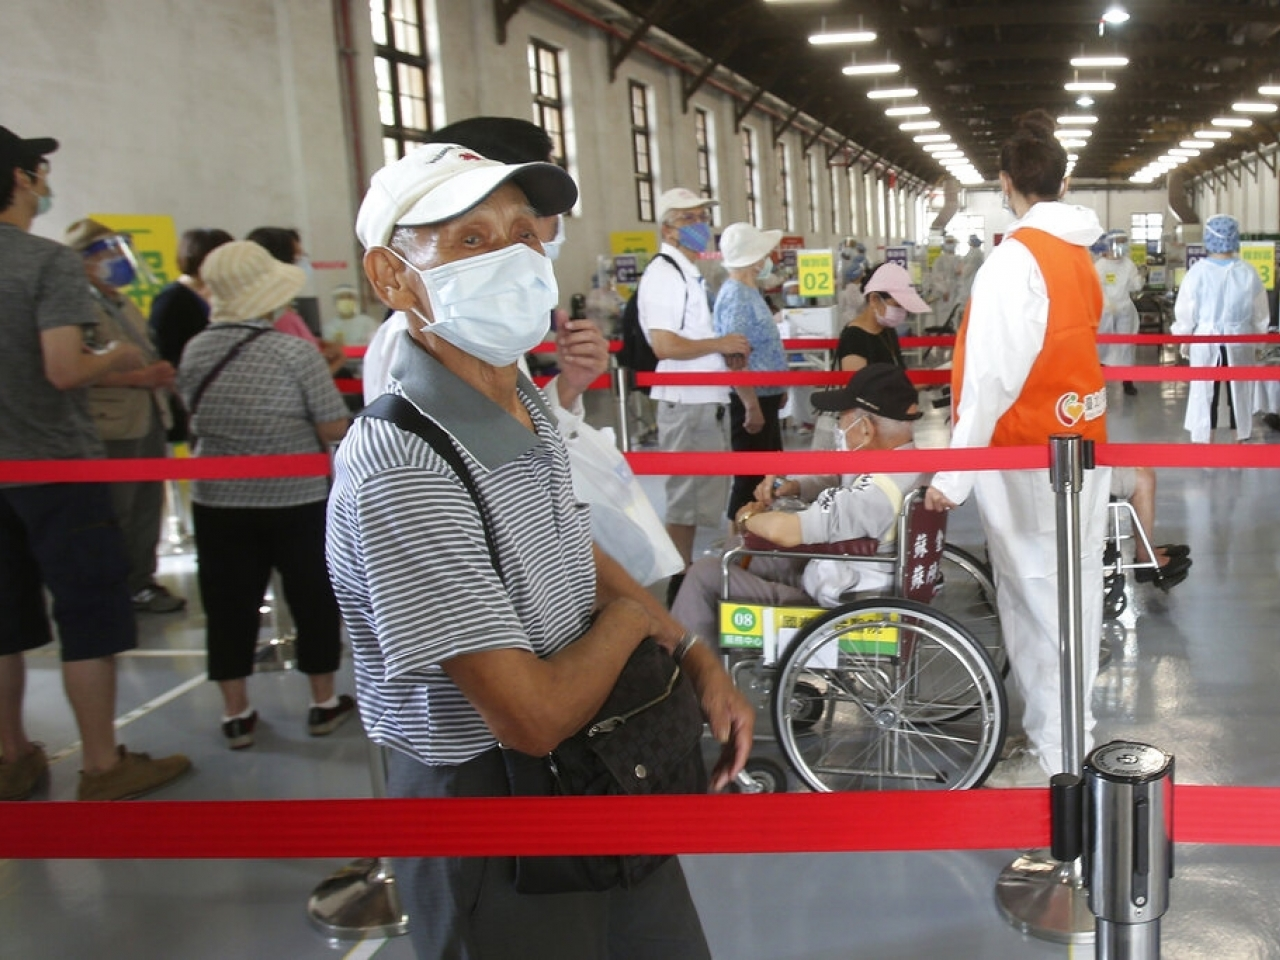 Elderly people queue for limited supplies of Covid-19 vaccinations in Taipei on Wednesday. File photo: AP